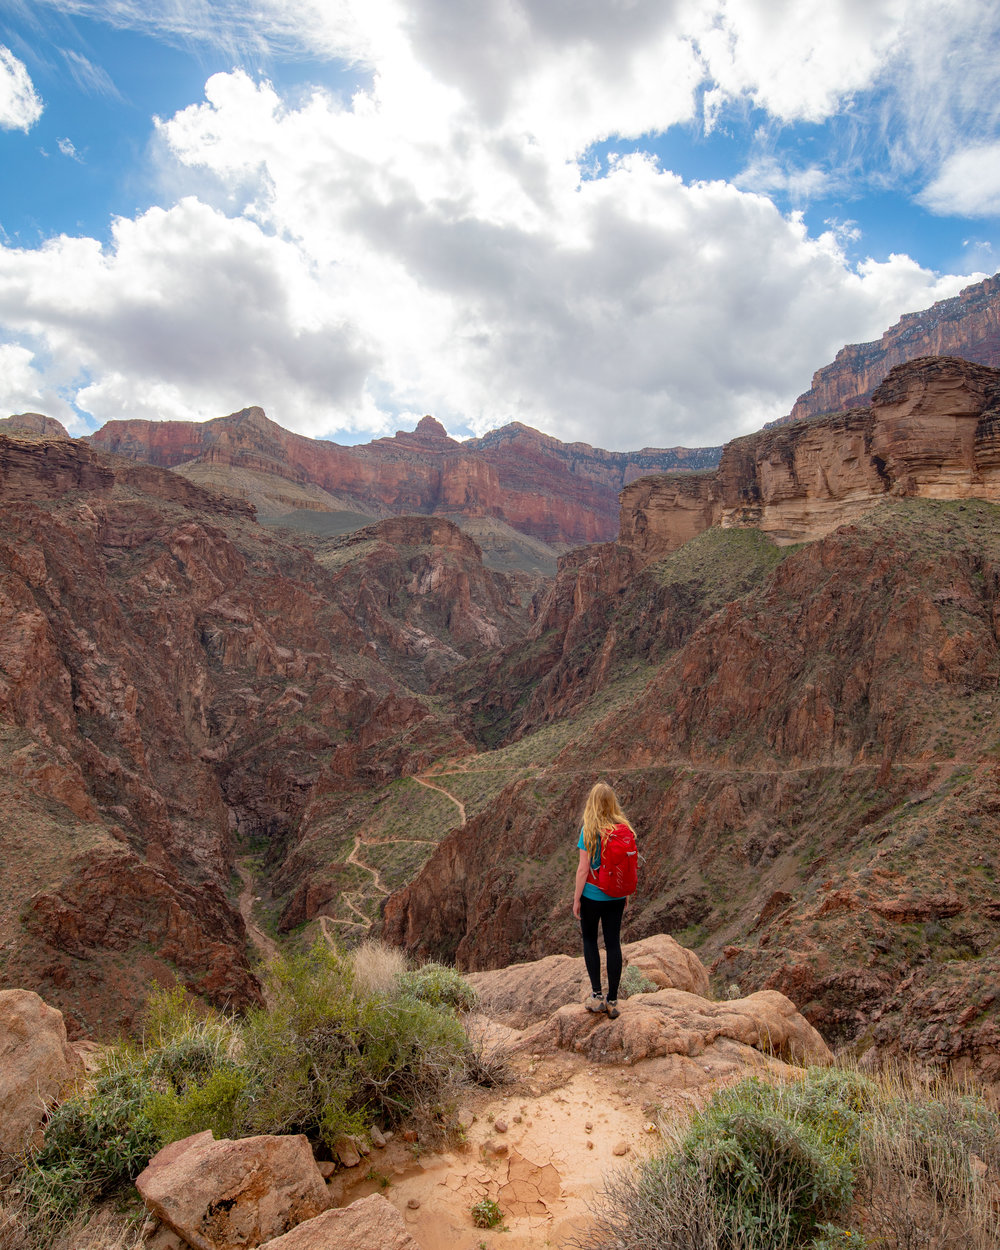 Views on the Bright Angel Trail